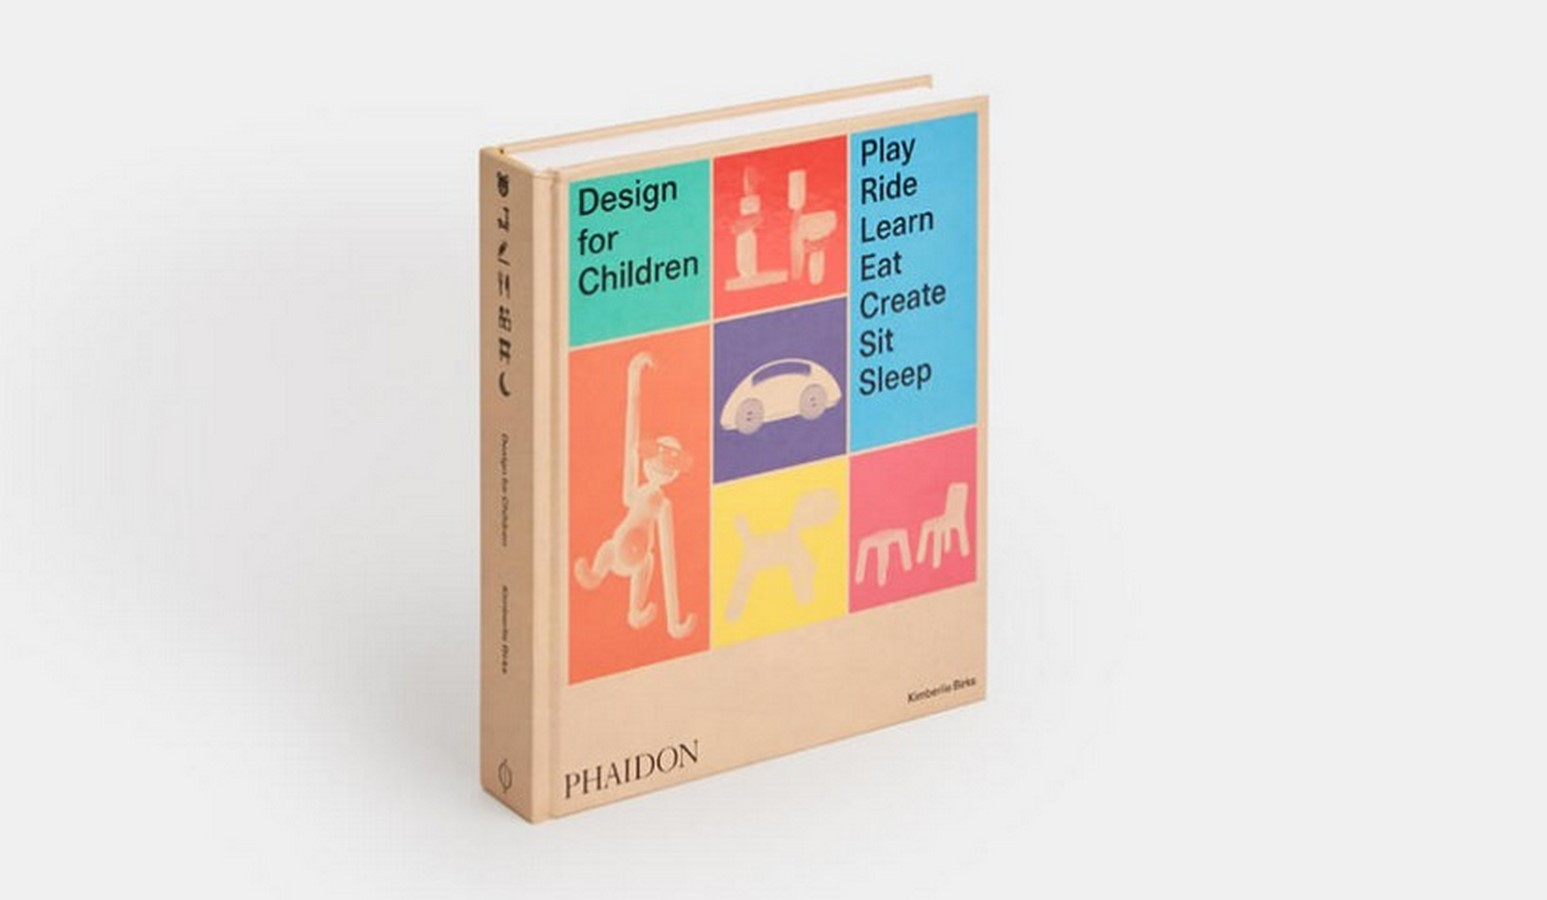 10 Books related to Furniture Design everyone should read Sheet2